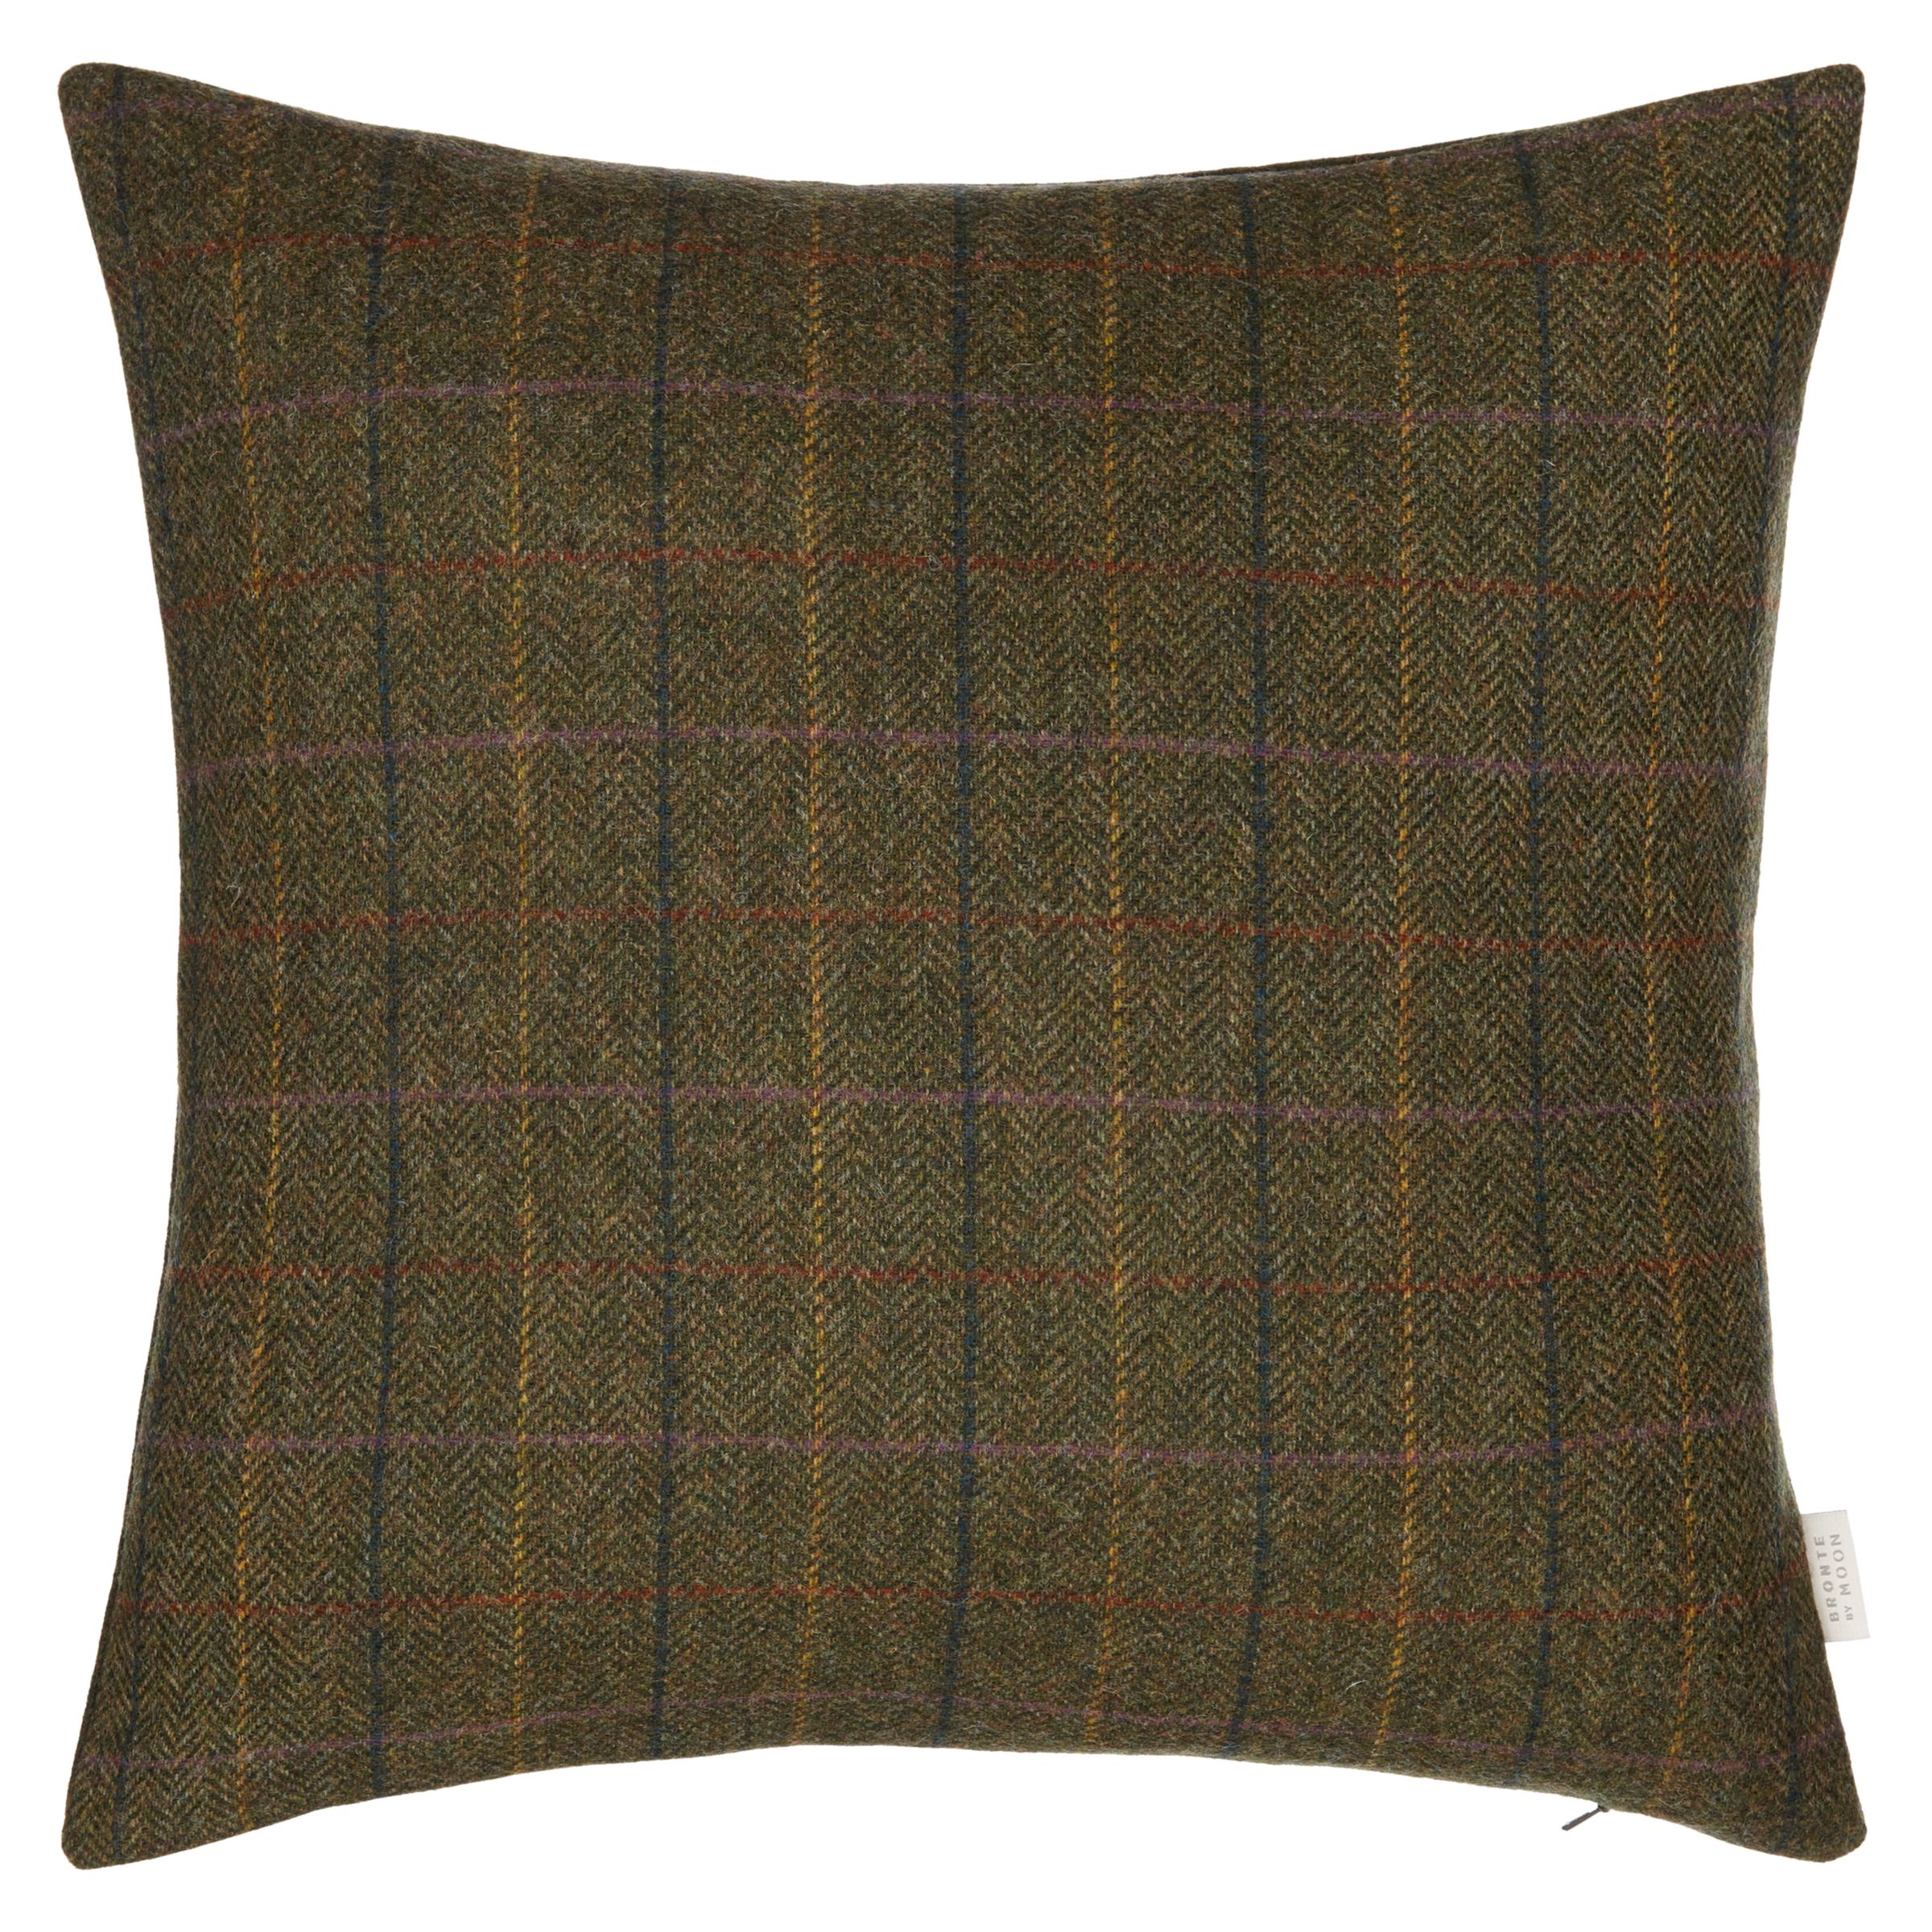 Bronte by Moon Bronte by Moon Herringbone Cushion, Green